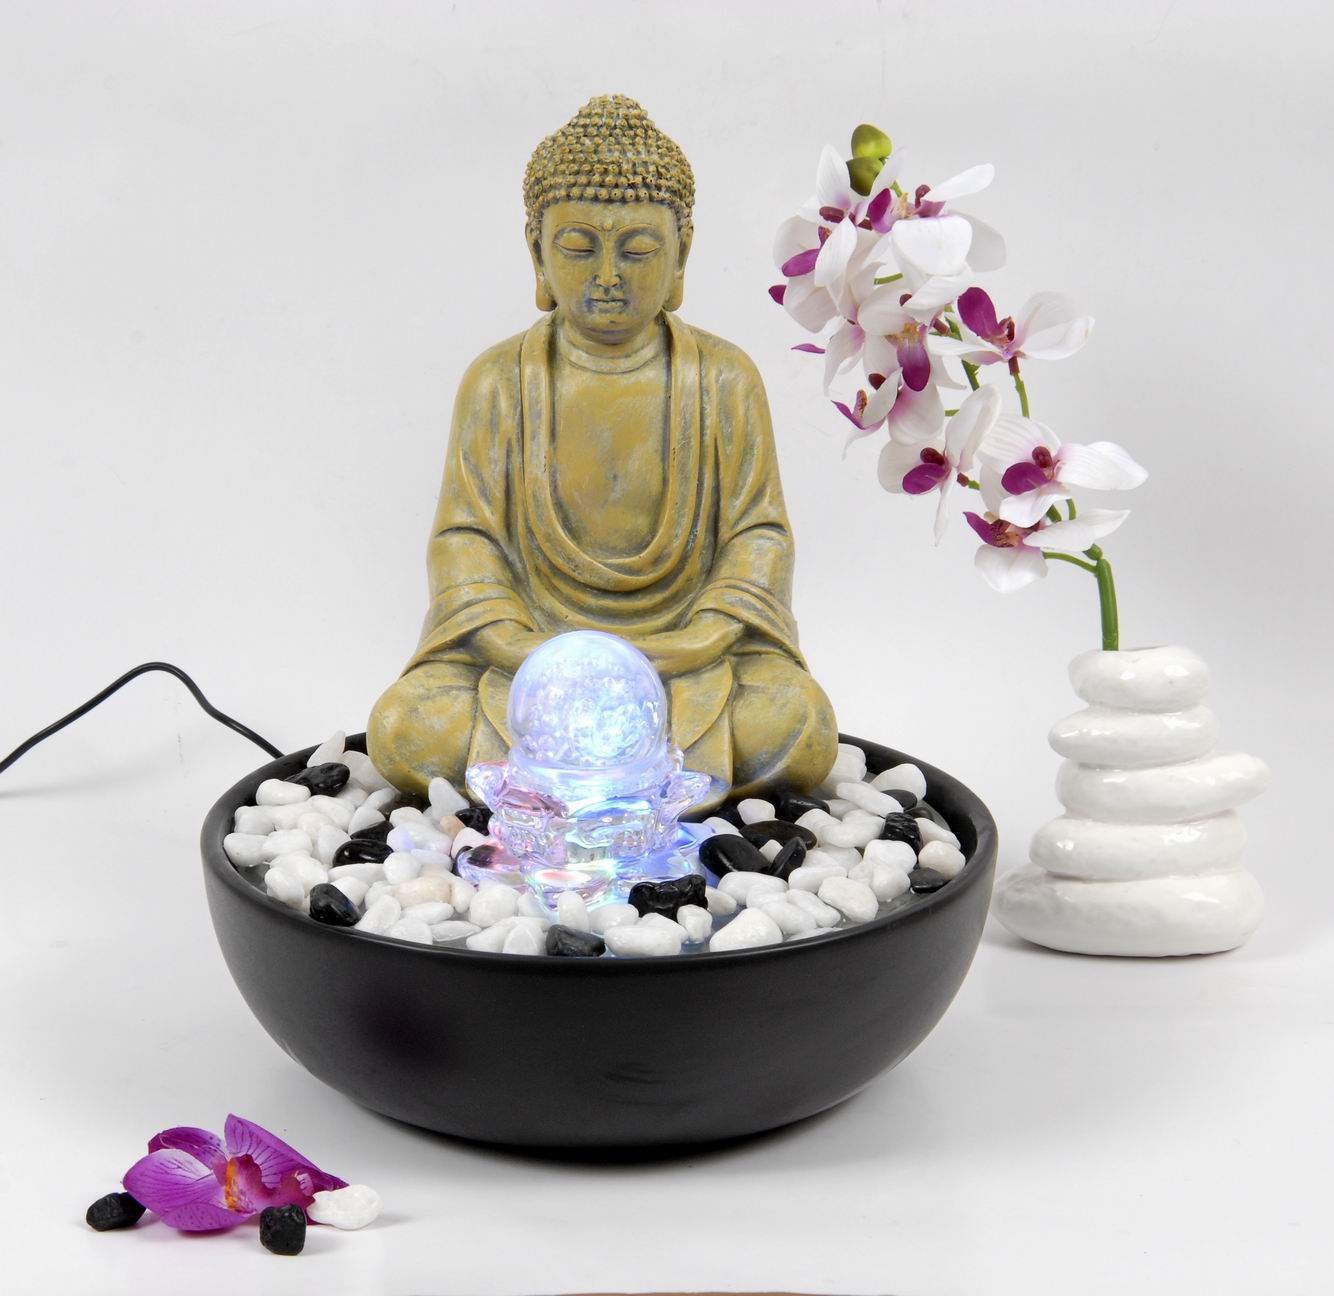 hochwertiger zimmerbrunnen im buddha stil und led. Black Bedroom Furniture Sets. Home Design Ideas